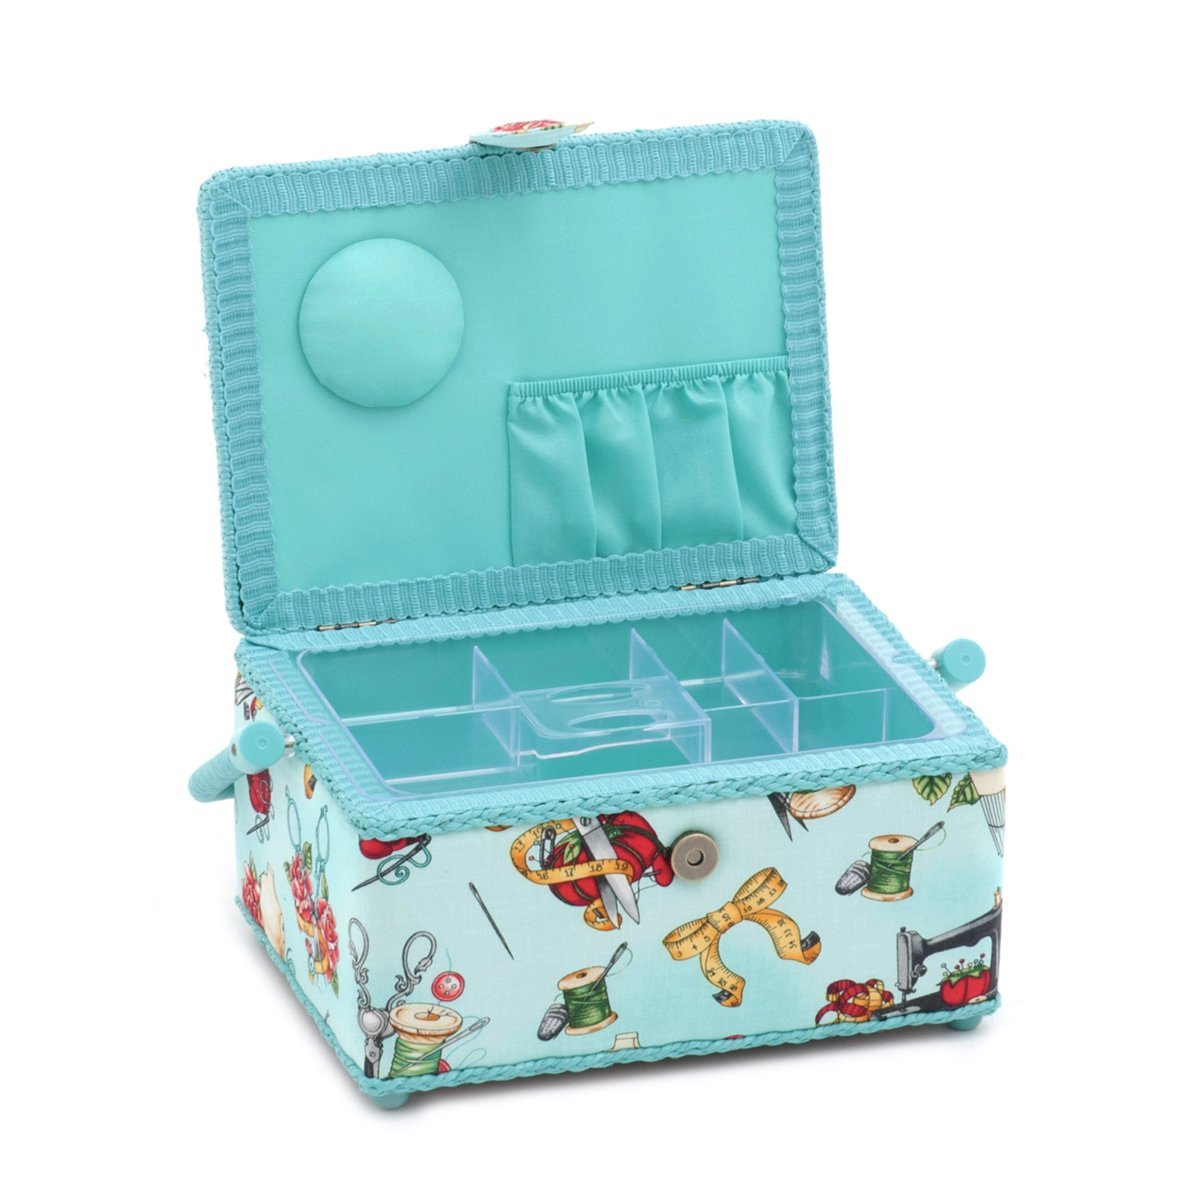 Hobby Gift Tattoo Notions Small Rectangle Sewing Box 24 x 16 x 11cm d//w//h